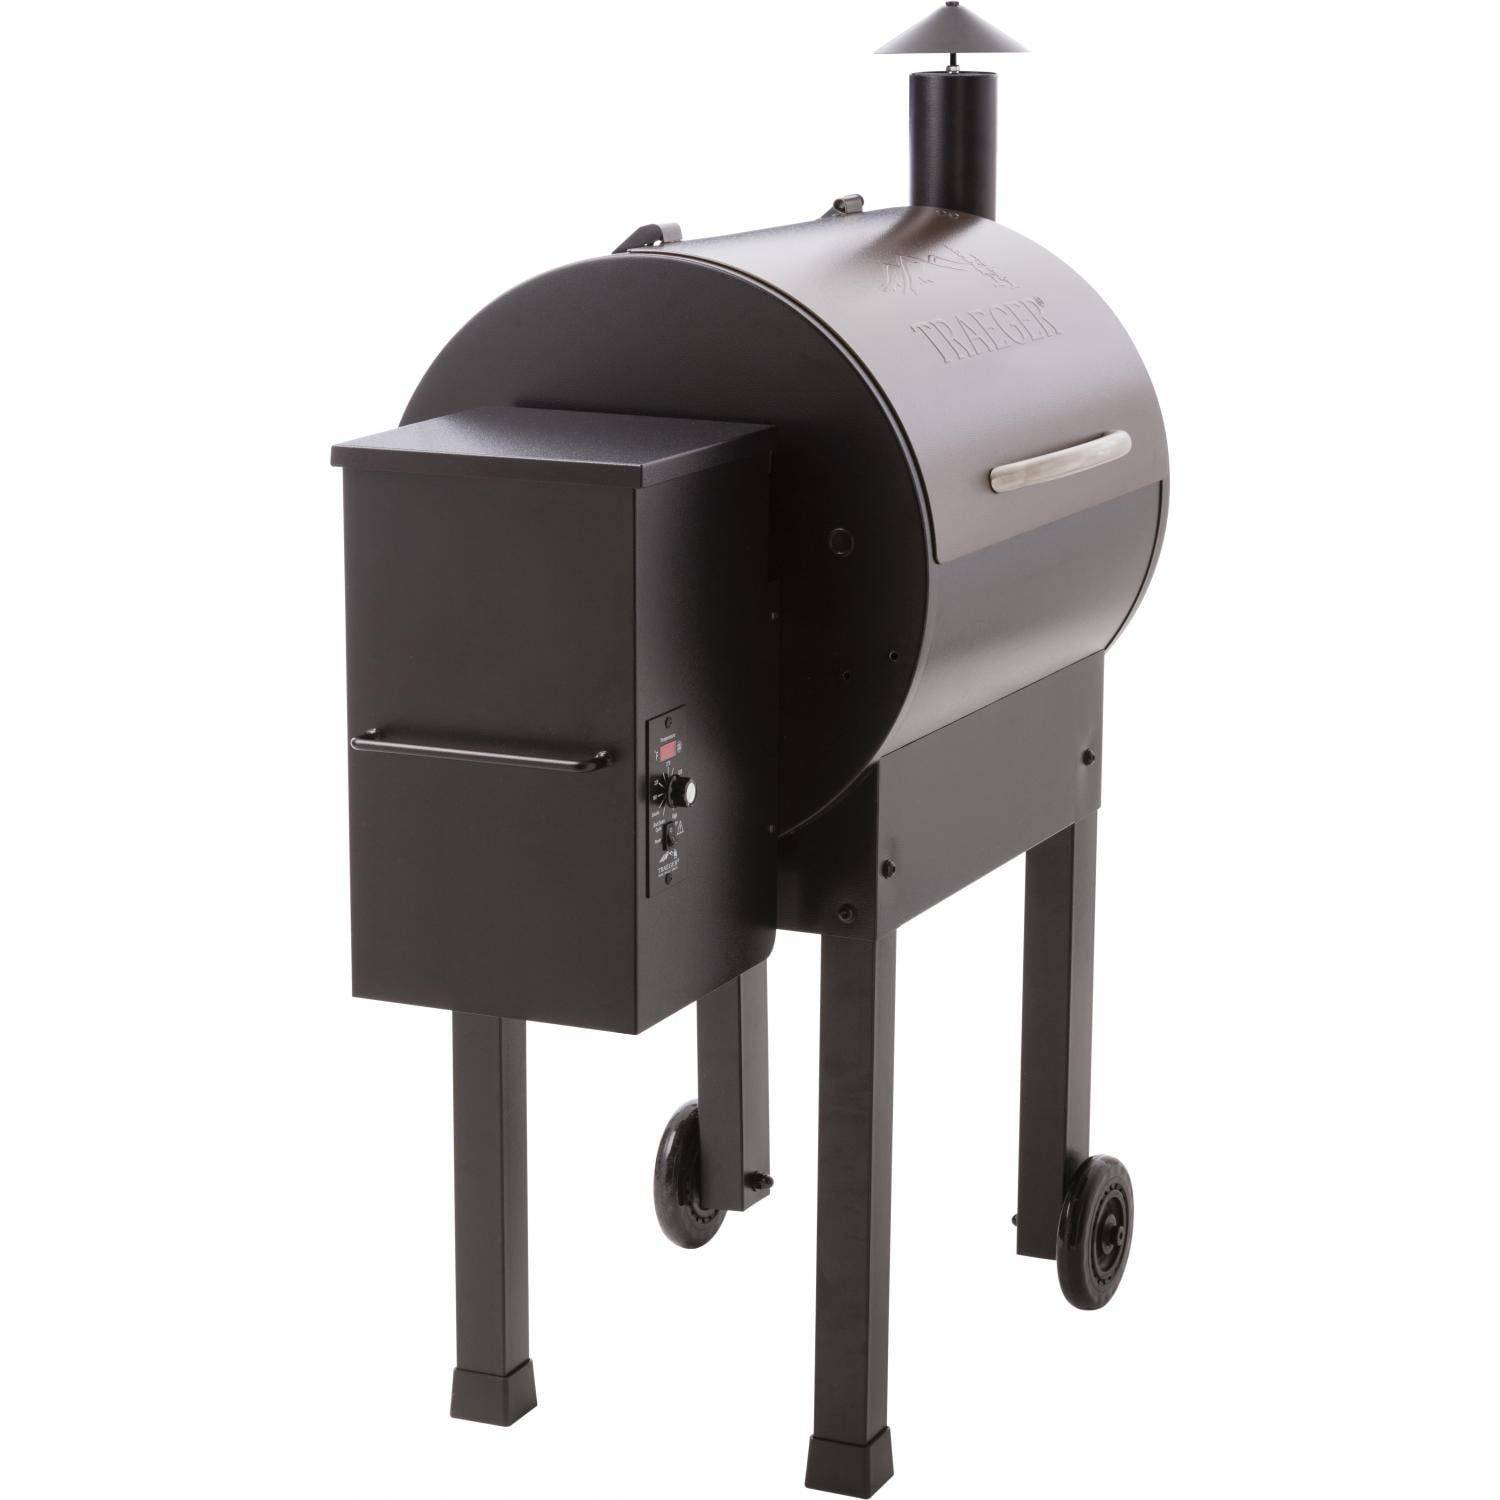 4816cb575eef8774b9d7551bcef4d744?i10c=img.resize.fit(width 1000height 1000bordercolor '0xffffff') traeger lil tex elite 22 pellet grill on cart tfb42lzb bbq guys 2016 Texas Elite 34 Traeger at crackthecode.co